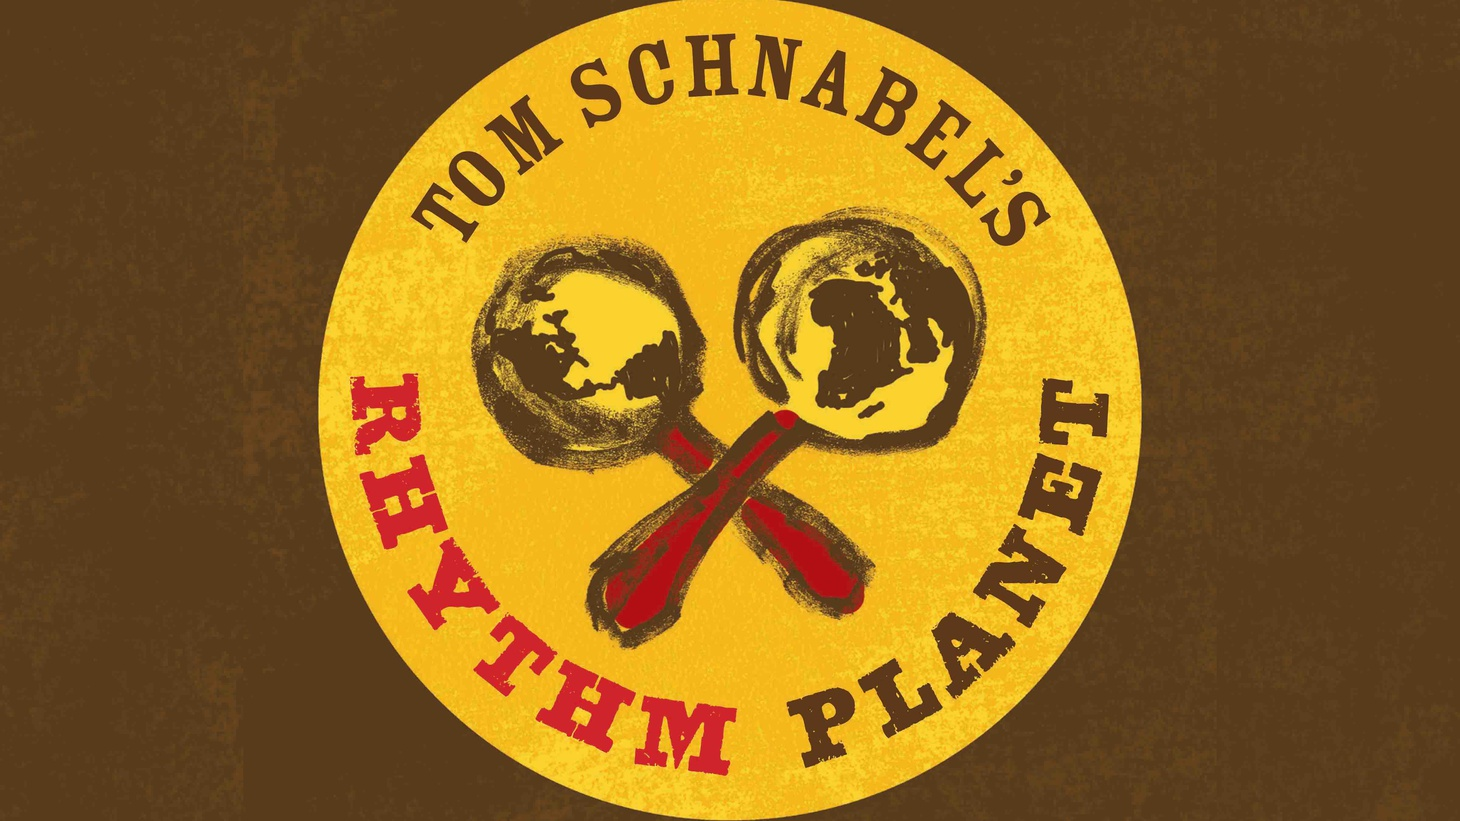 This week Rhythm Planet features eleven eclectic new releases Tom has chosen.